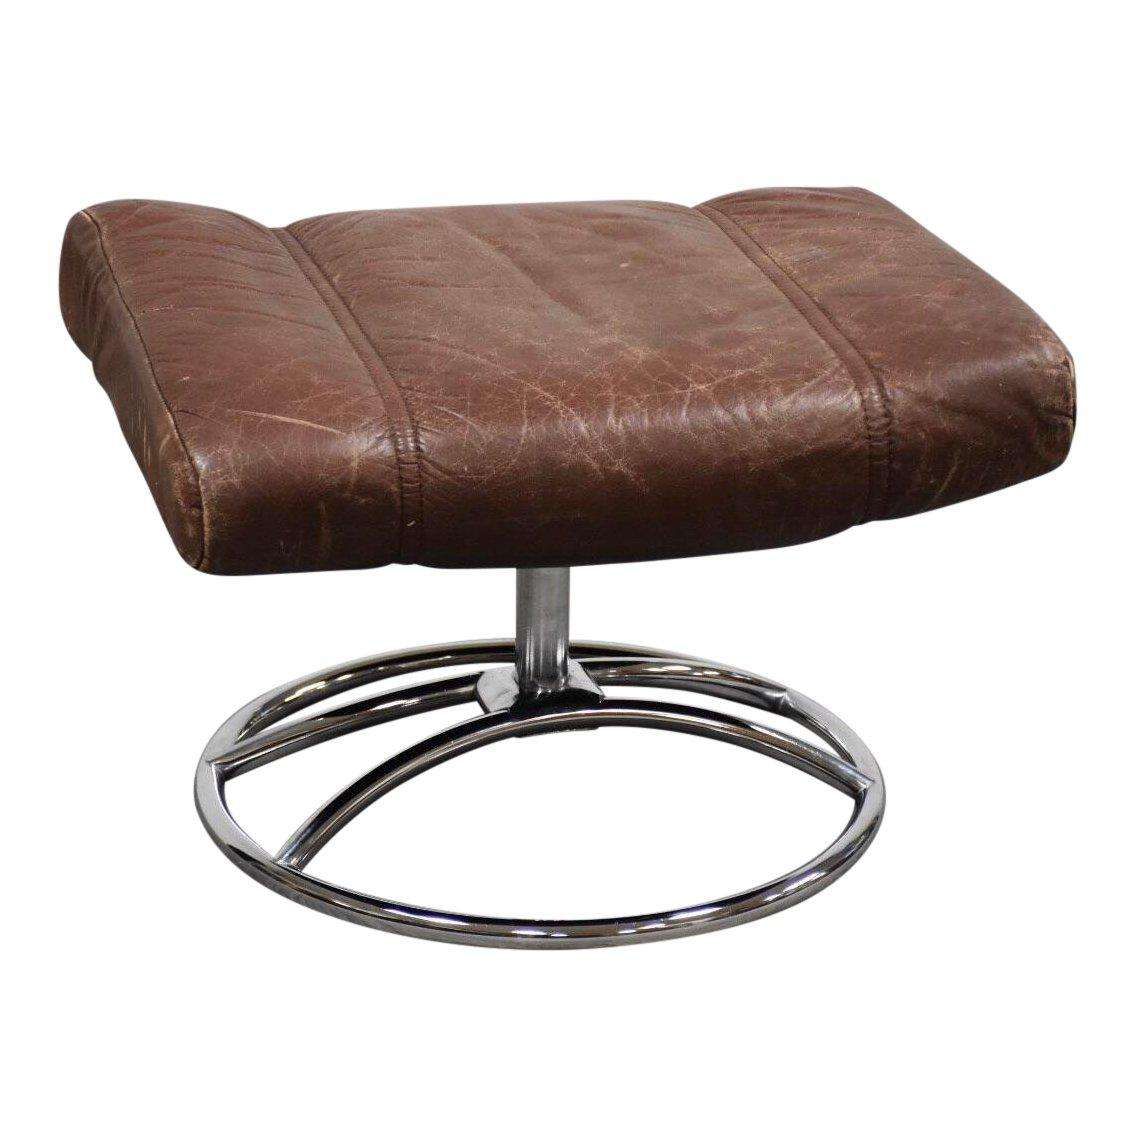 1970s Vintage Ekornes Brown Leather And Chrome Ottoman